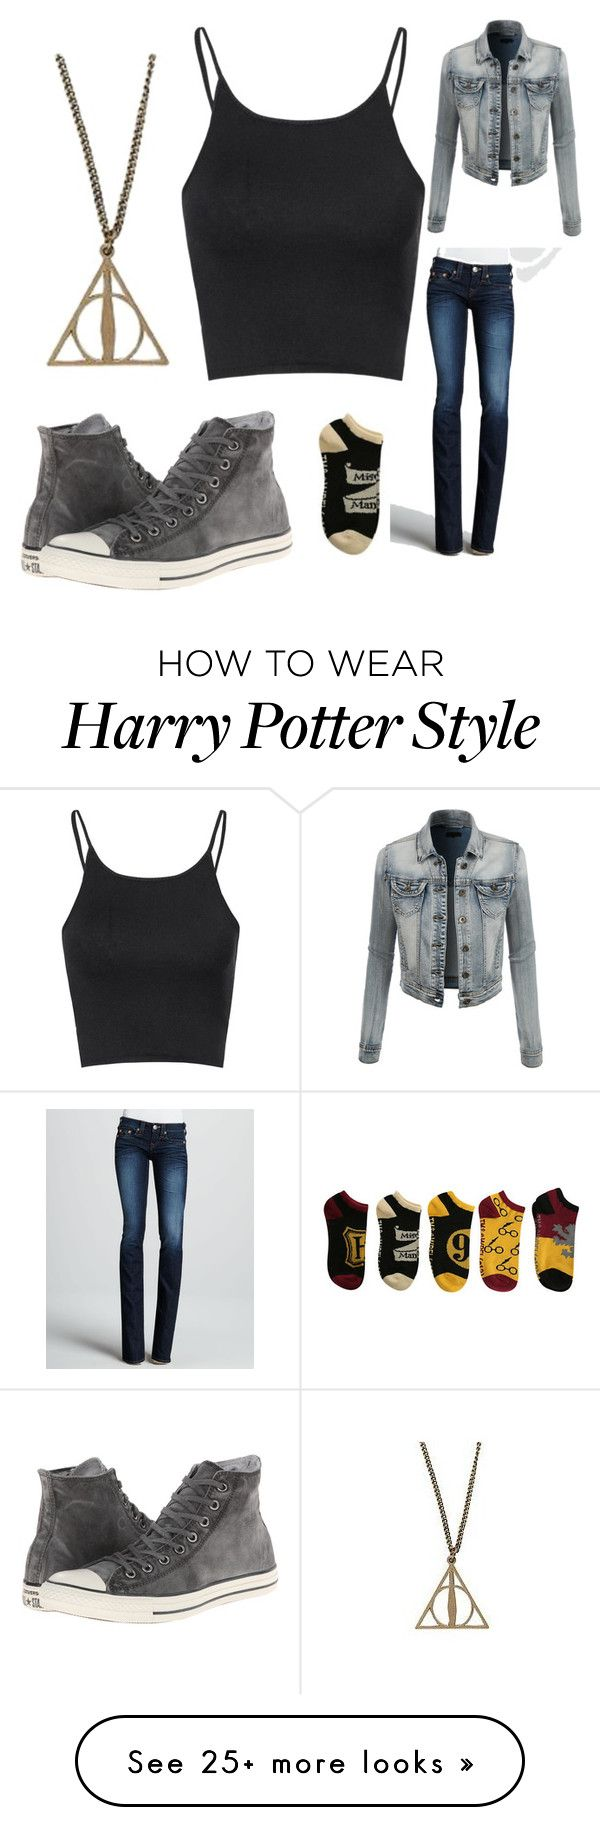 """""""My friends r special"""" by abby-fashions on Polyvore featuring moda, Glamorous, True Religion, Converse, LE3NO, women's clothing, women's fashion, women, female e woman"""